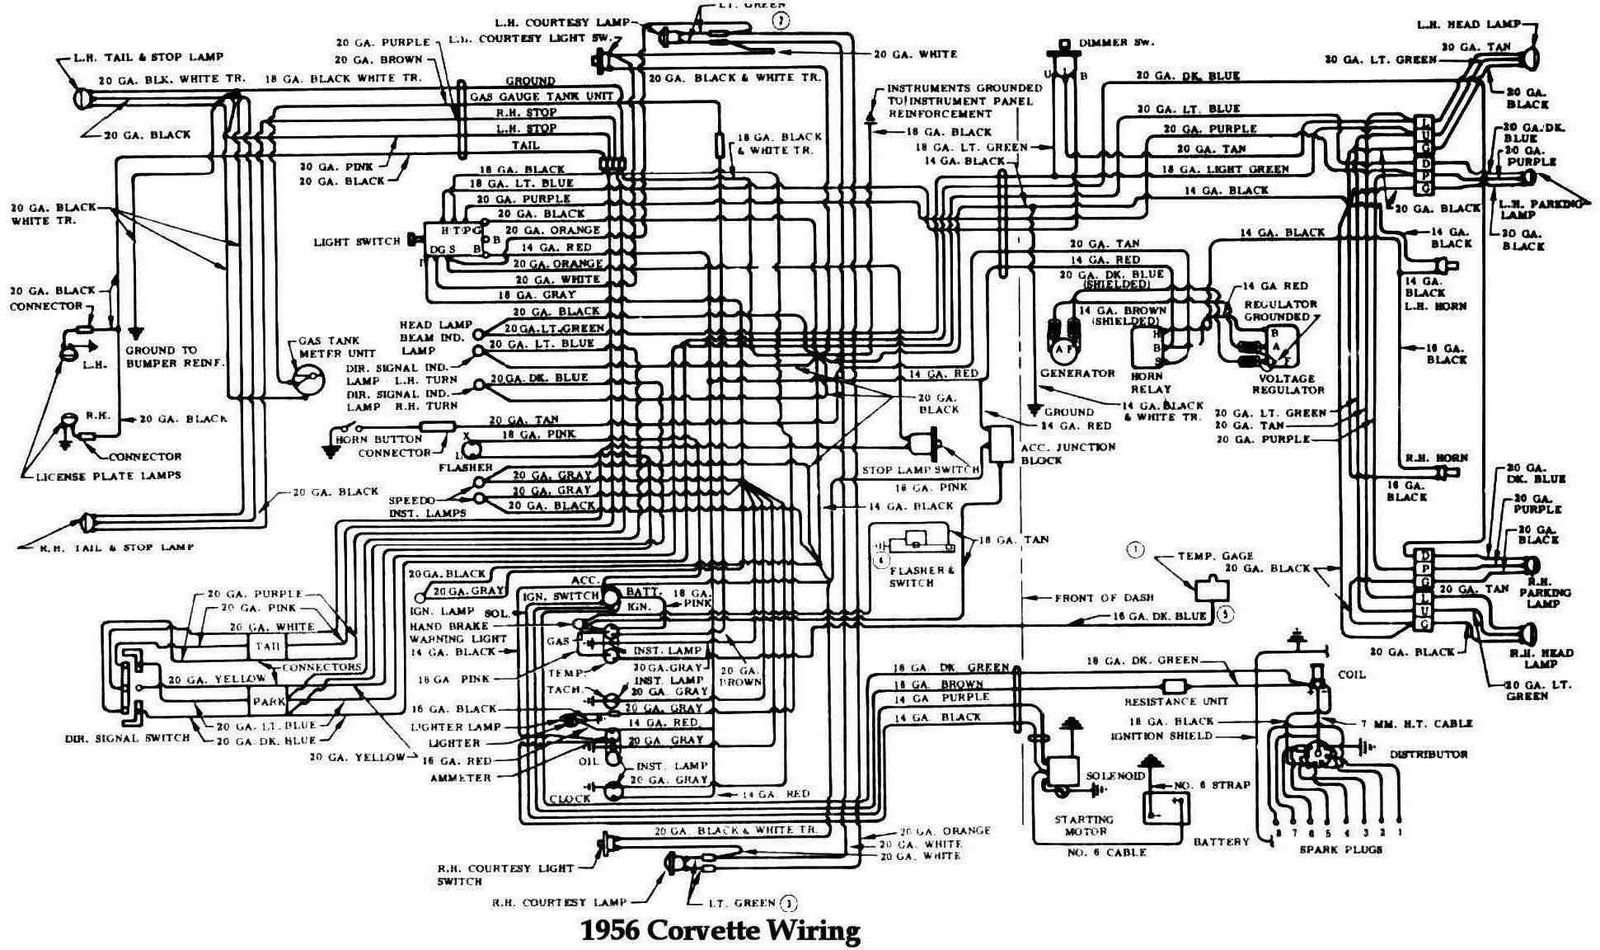 Chevrolet Corvette 1956 Wiring Diagram | All about Wiring